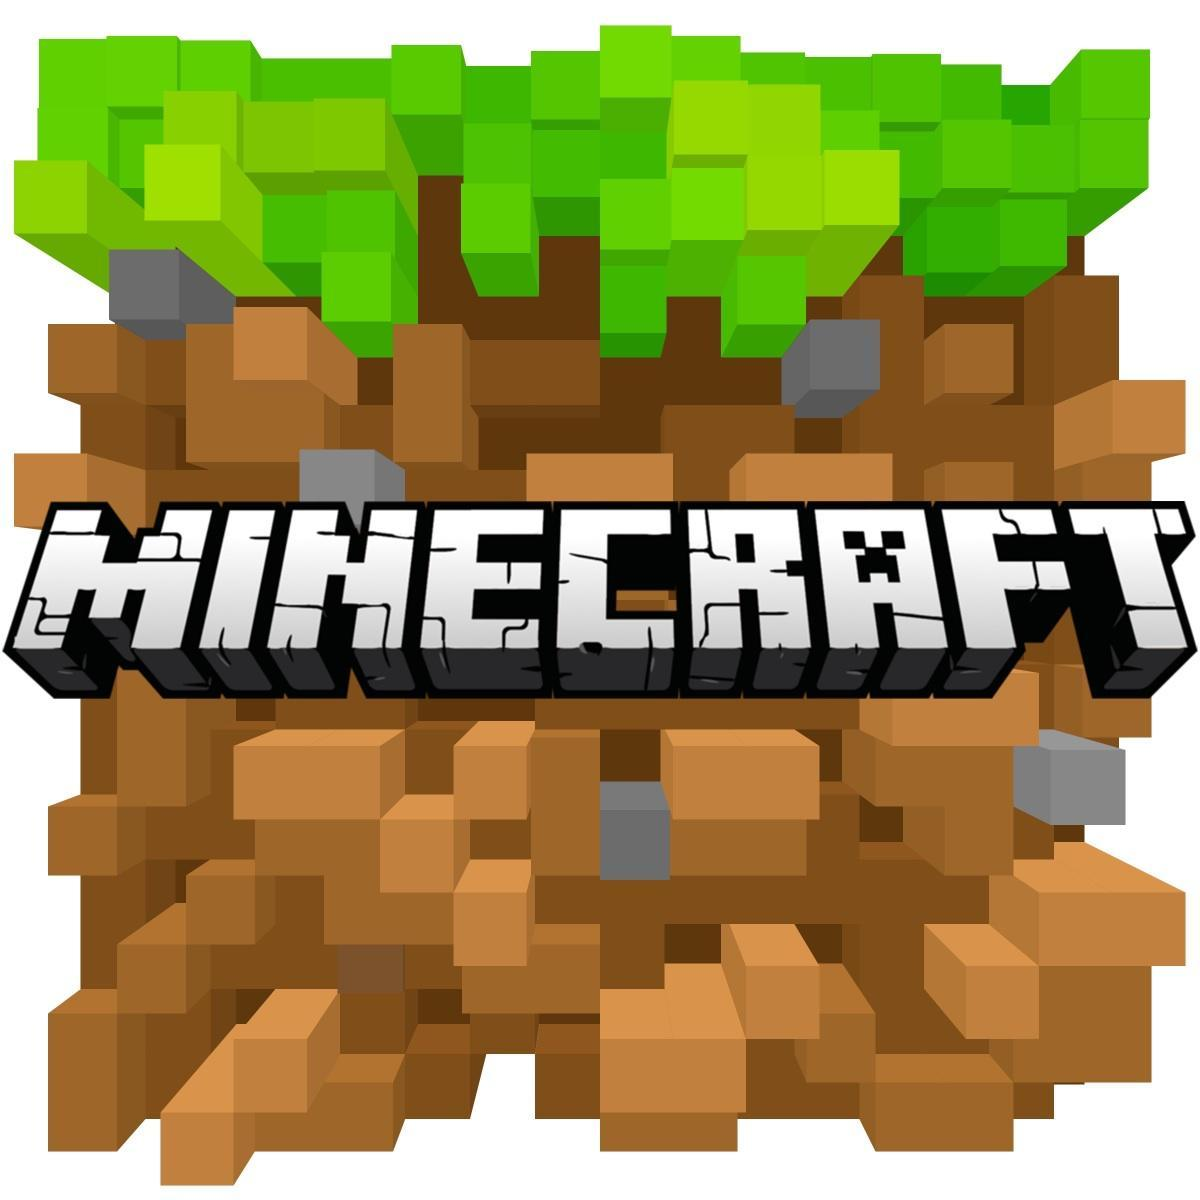 How much do you know minecraft?